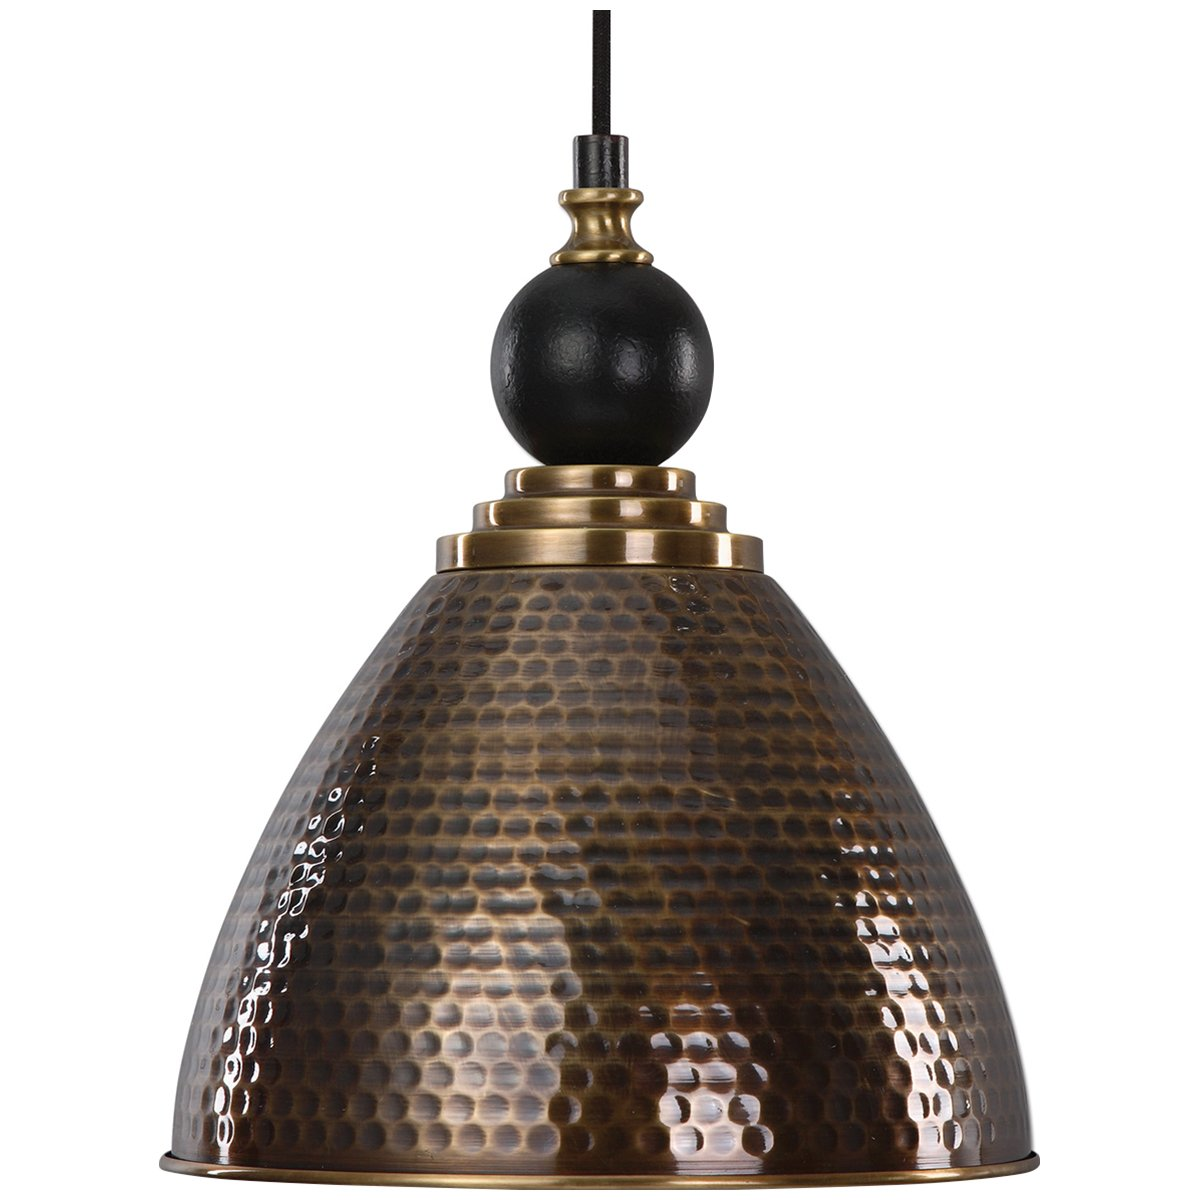 Amazon uttermost 22052 adastra 1 light antique brass pendant amazon uttermost 22052 adastra 1 light antique brass pendant home kitchen mozeypictures Image collections